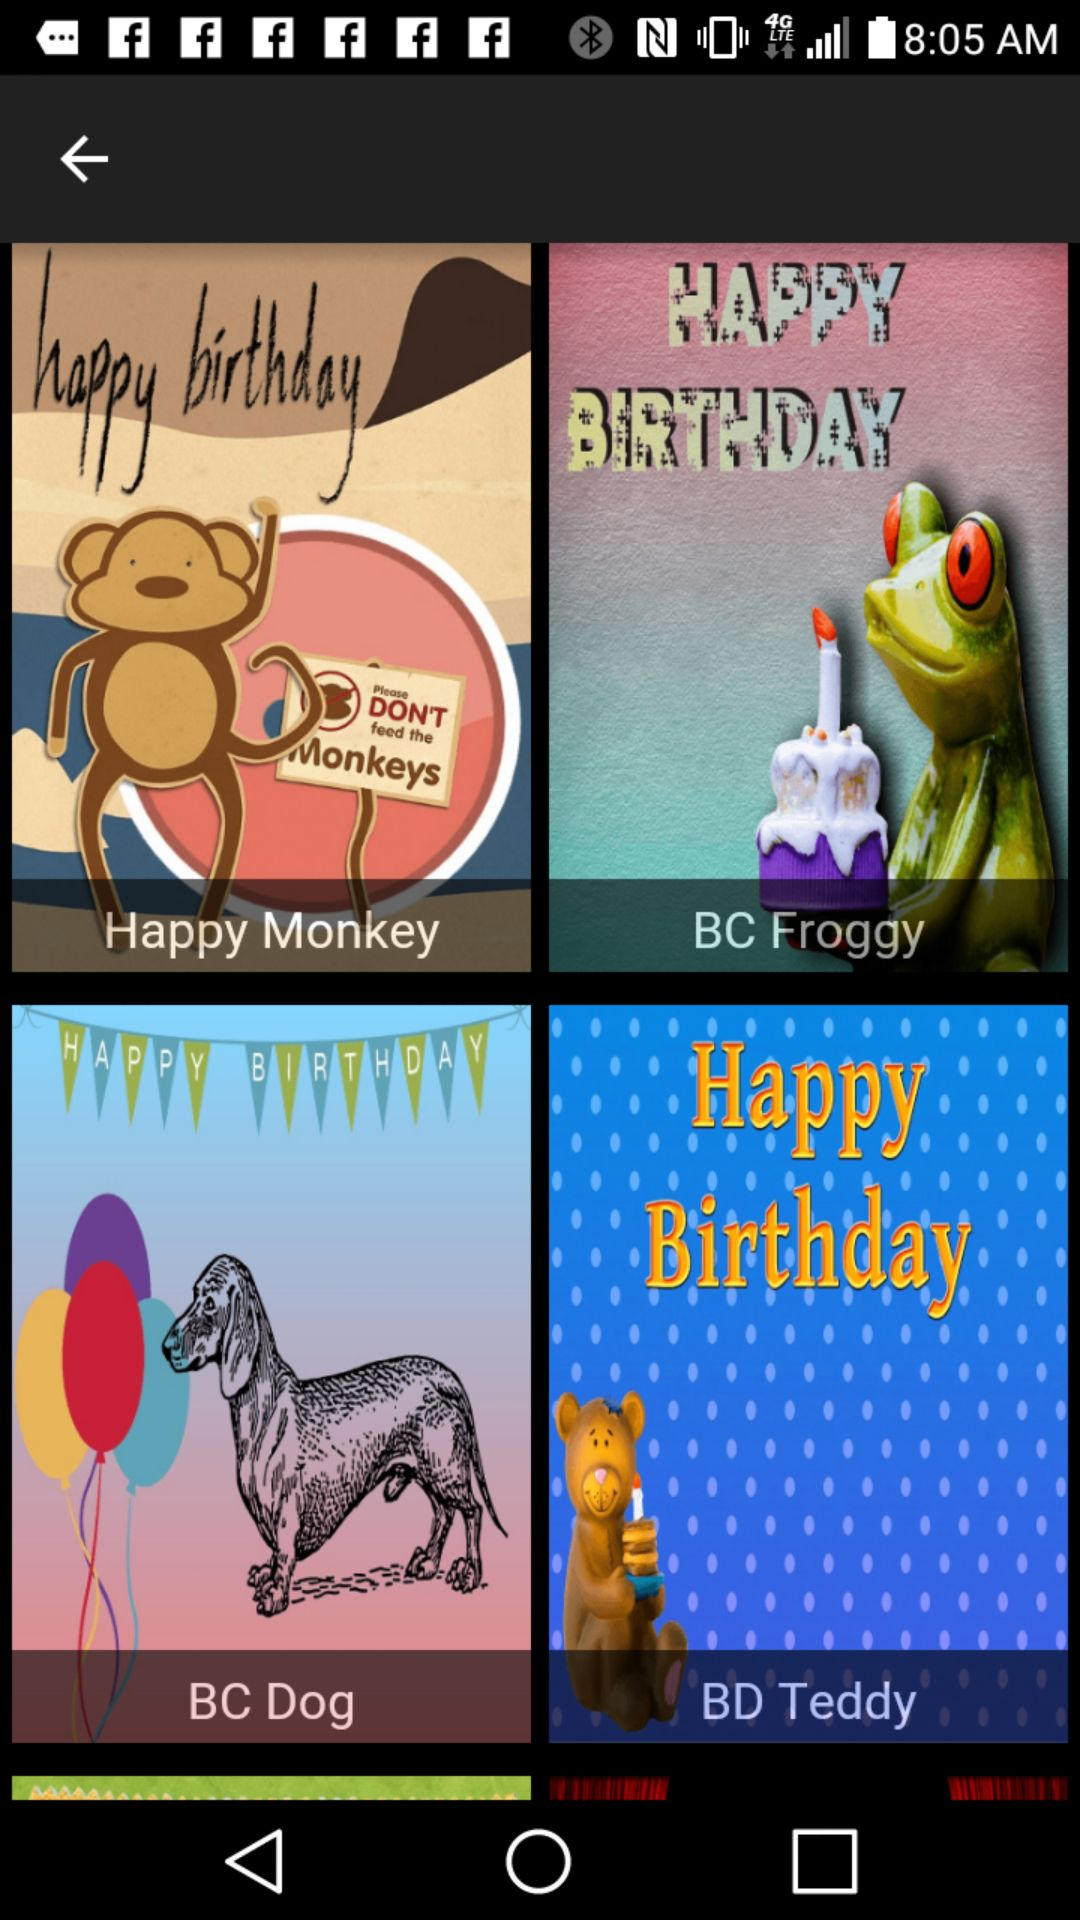 Welcome to happy birthday cards messenger app 100 free birthday welcome to happy birthday cards messenger app 100 free birthday greetings app and chat platform for iphone the best way to send happy birthday m4hsunfo